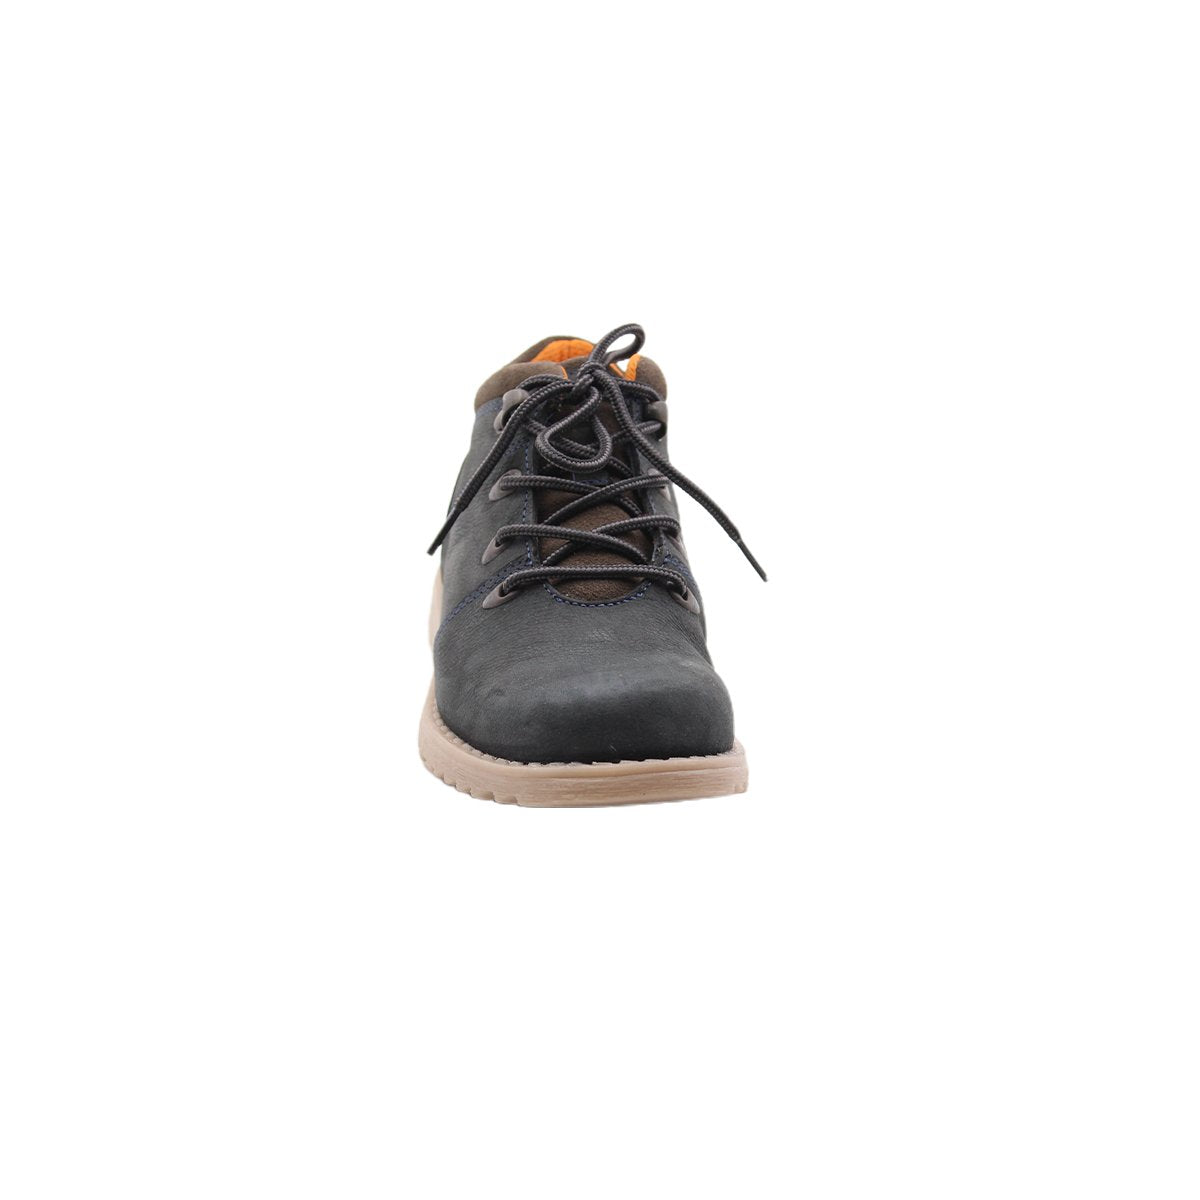 bota andy 2.0 - color navy, 39995, all day comfort, azul, calzado, cuero, fase 5, hush puppies, navy, nino, ninos, precio regular comprar, en linea, online, delivery, costa rica, zapatos